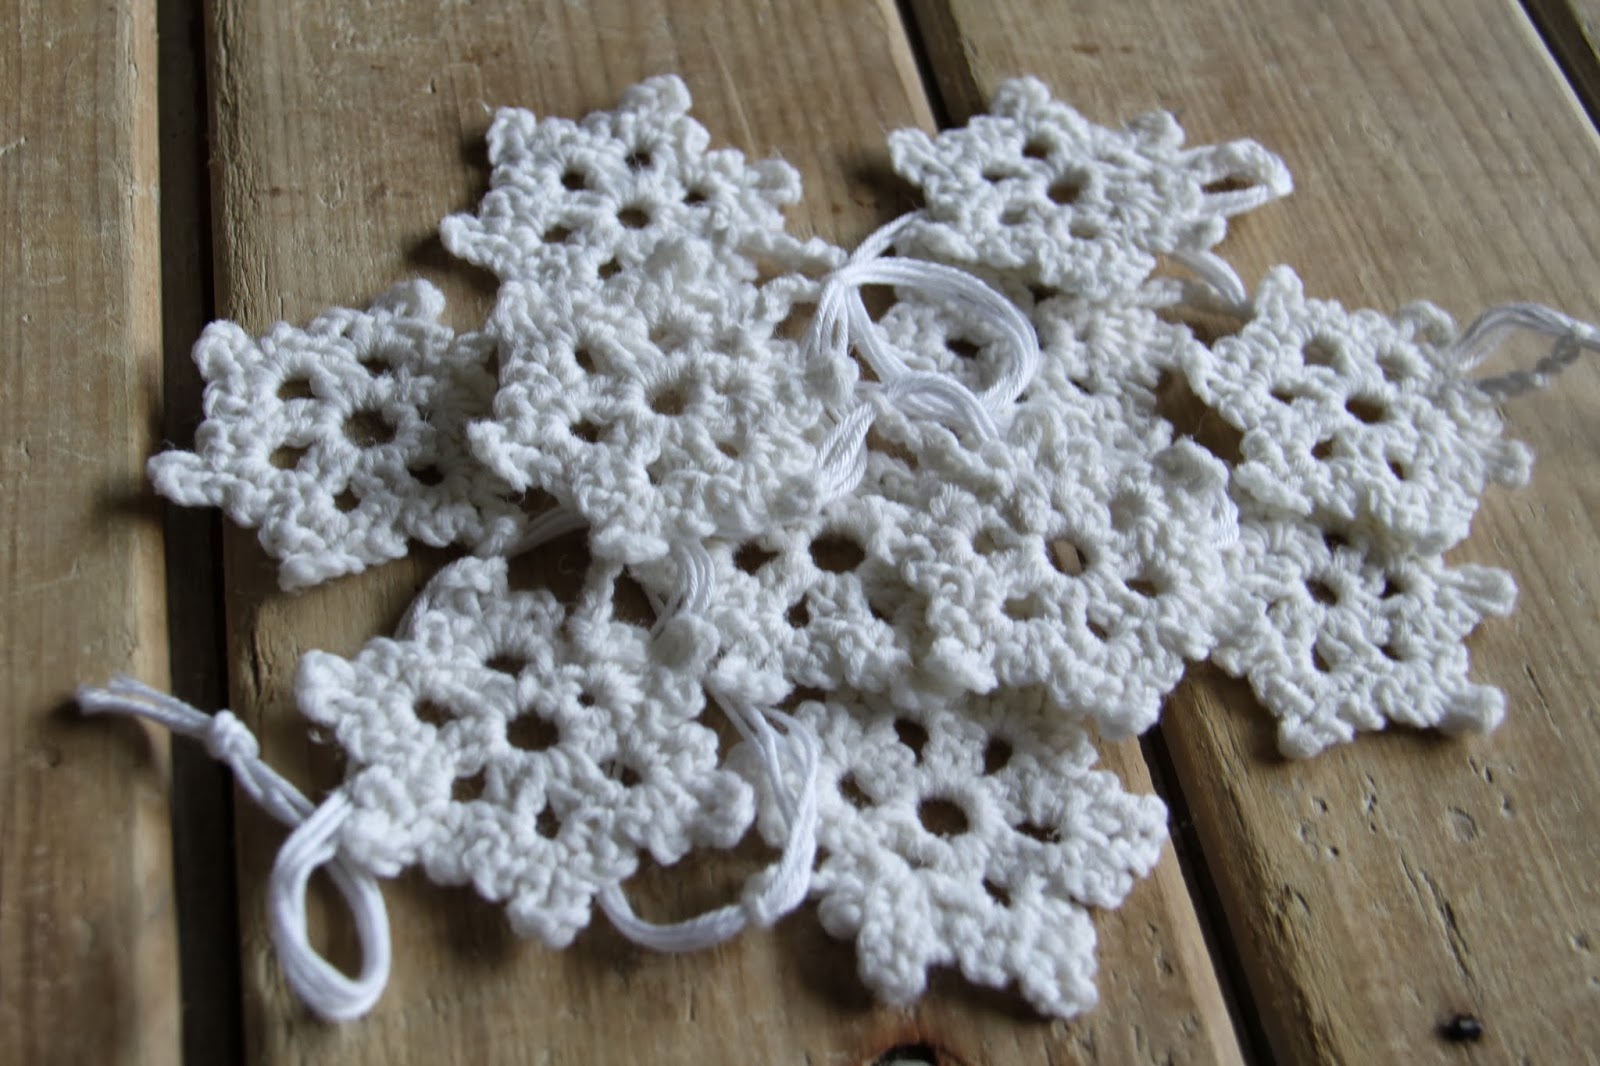 Crochet Snowflake Patterns Free Easy : Crochet Brio: Crochet Snowflakes Garland